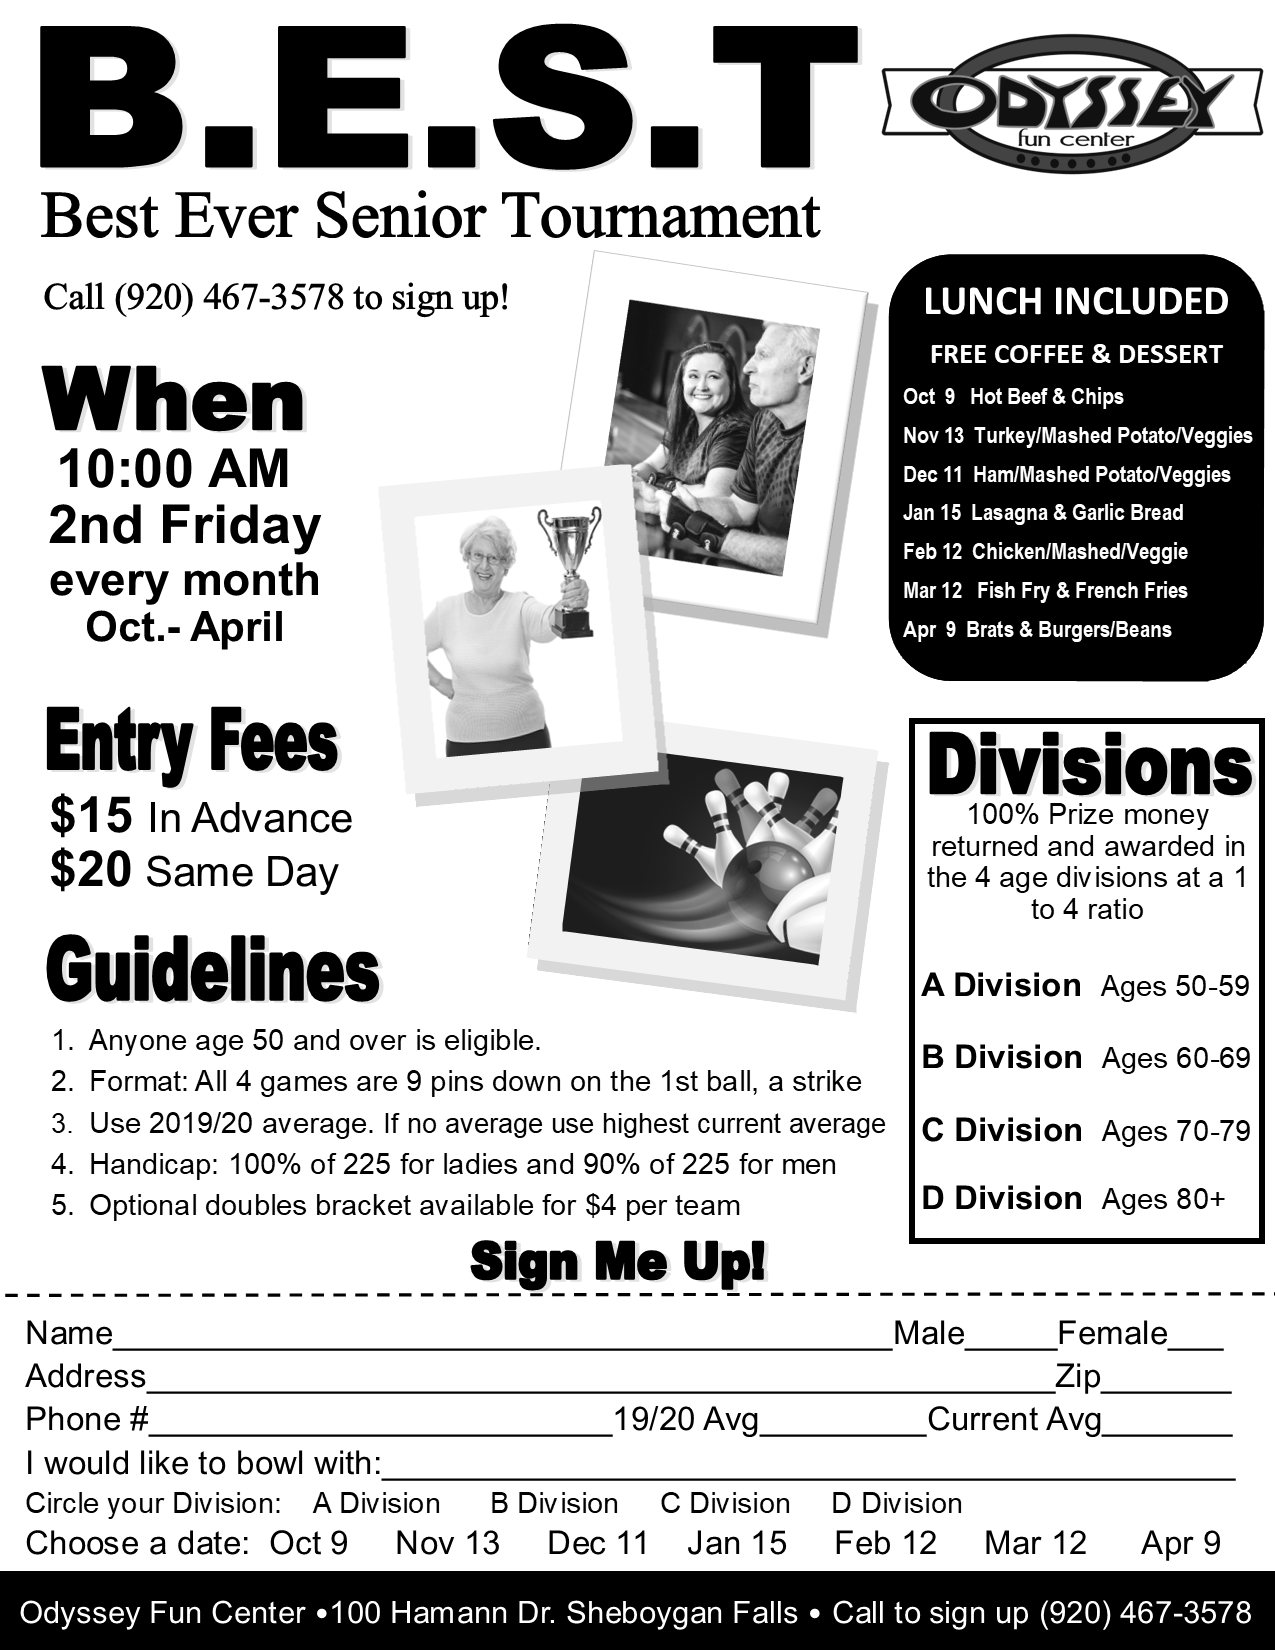 best senior tournament | senior bowling tournament | odyssey bowling tournaments | fall 2020 - winter 2021 bowling tournaments | odyssey fun center | sheboygan, wi